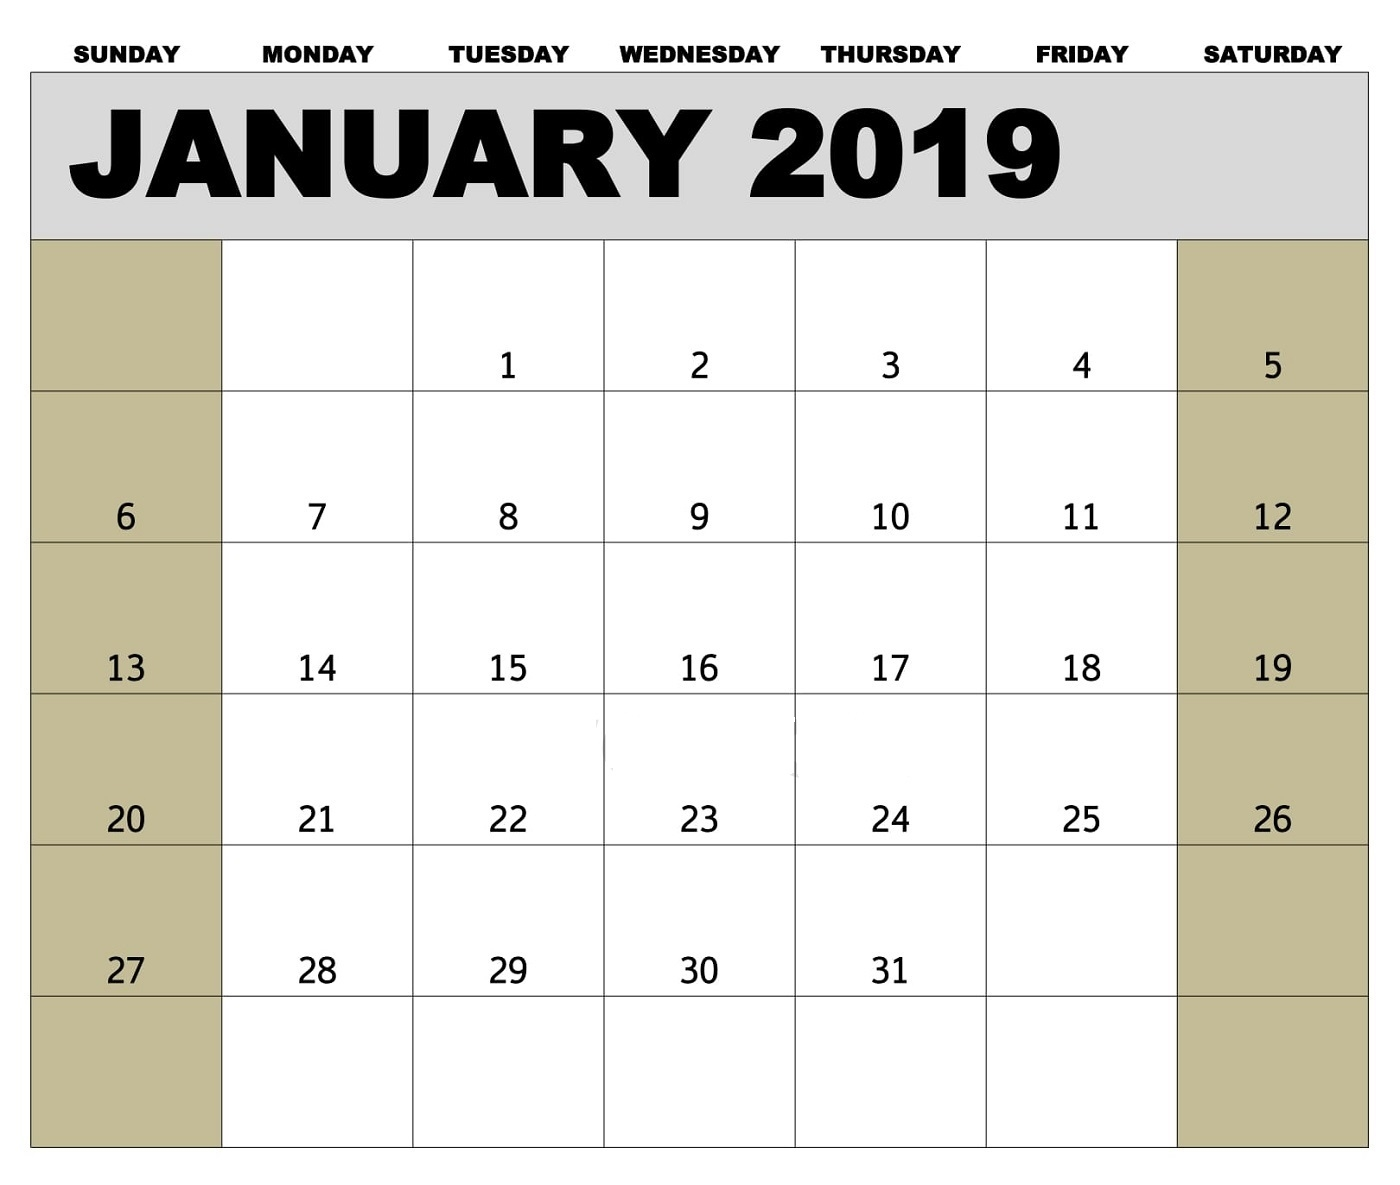 2019 calendar january canada printable blank archives picture::January 2019 Calendar Canada